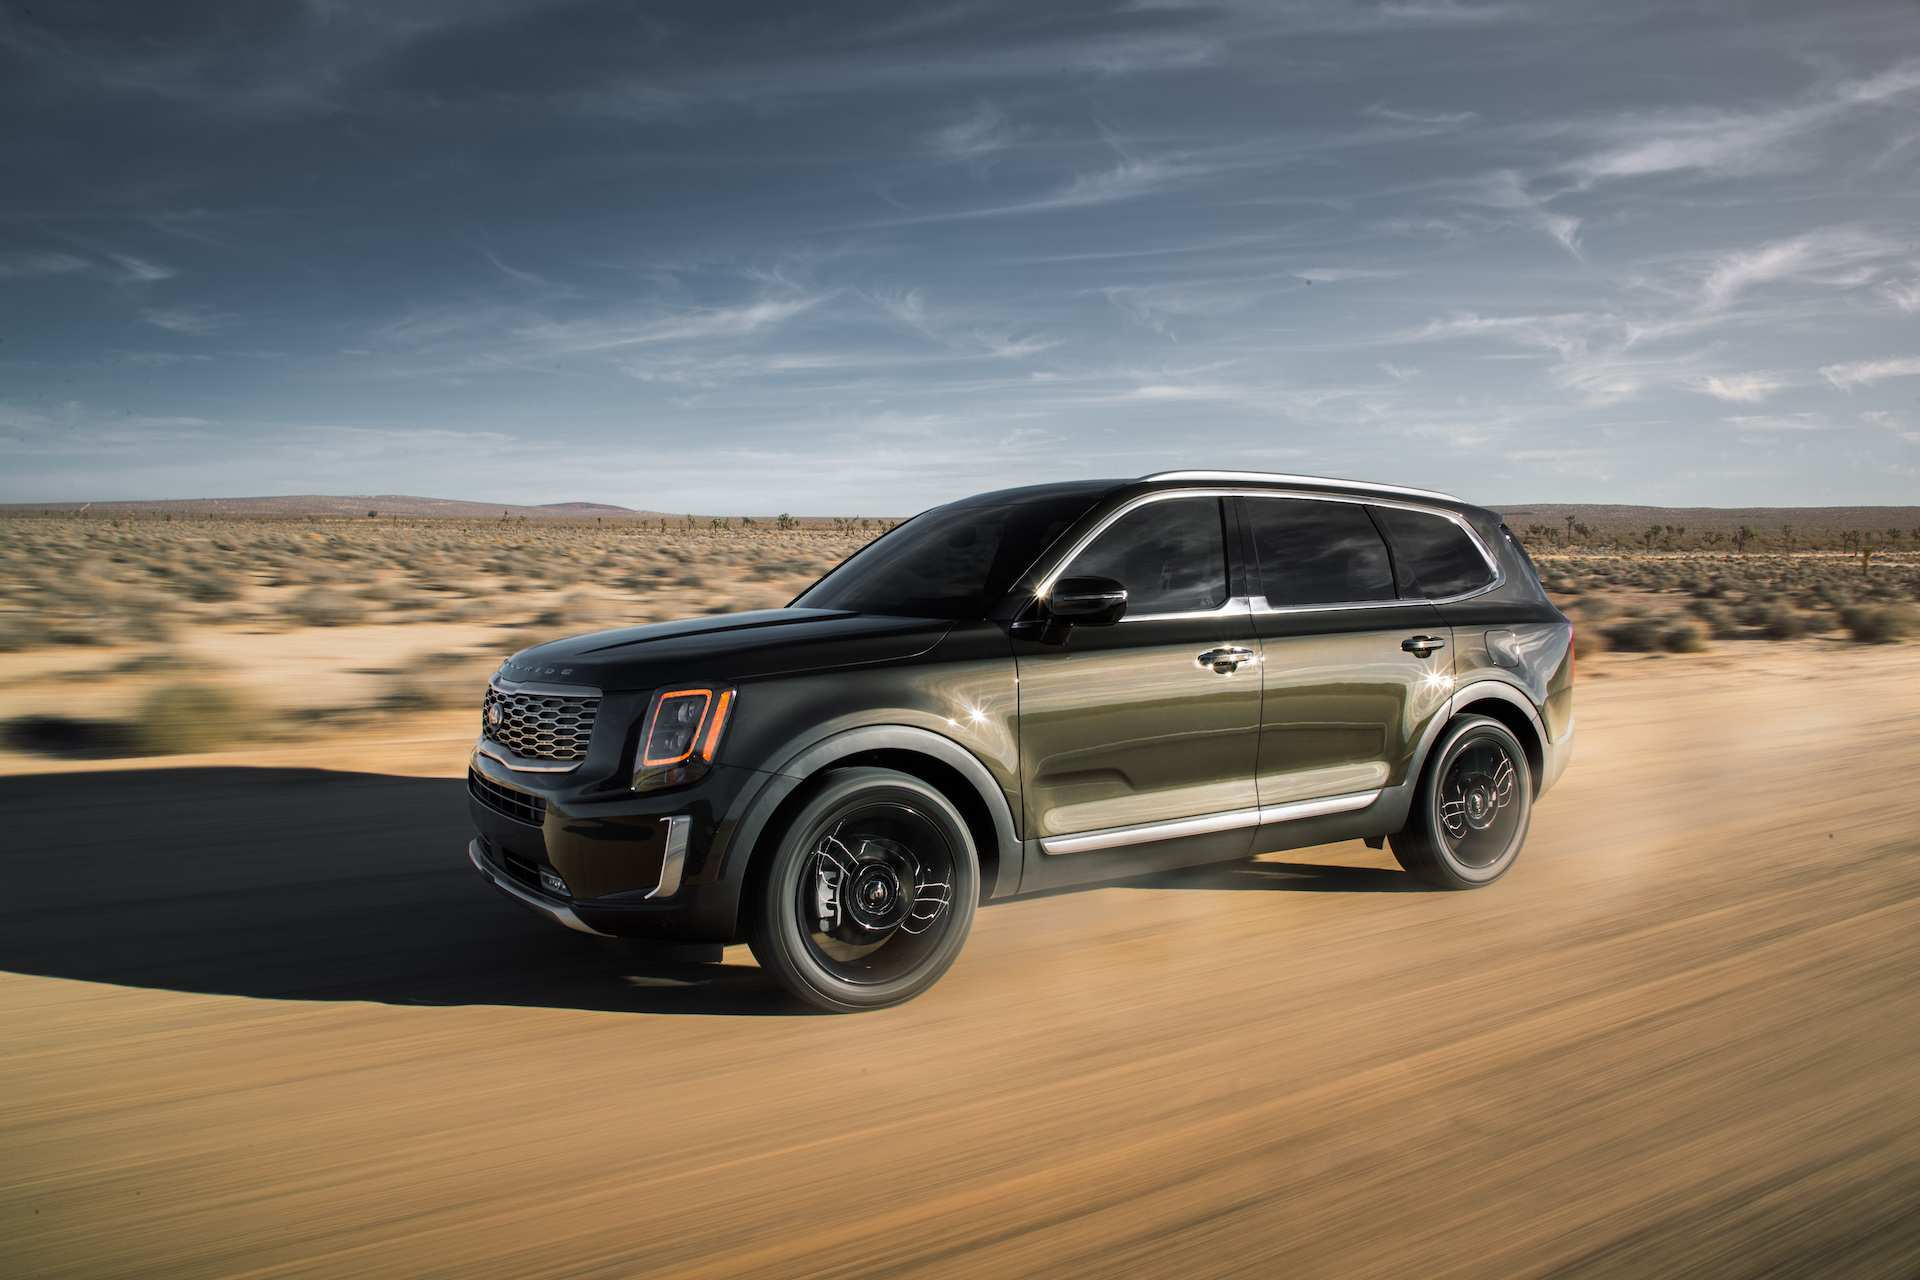 30 Gallery of 2020 Kia Telluride Brochure Prices by 2020 Kia Telluride Brochure